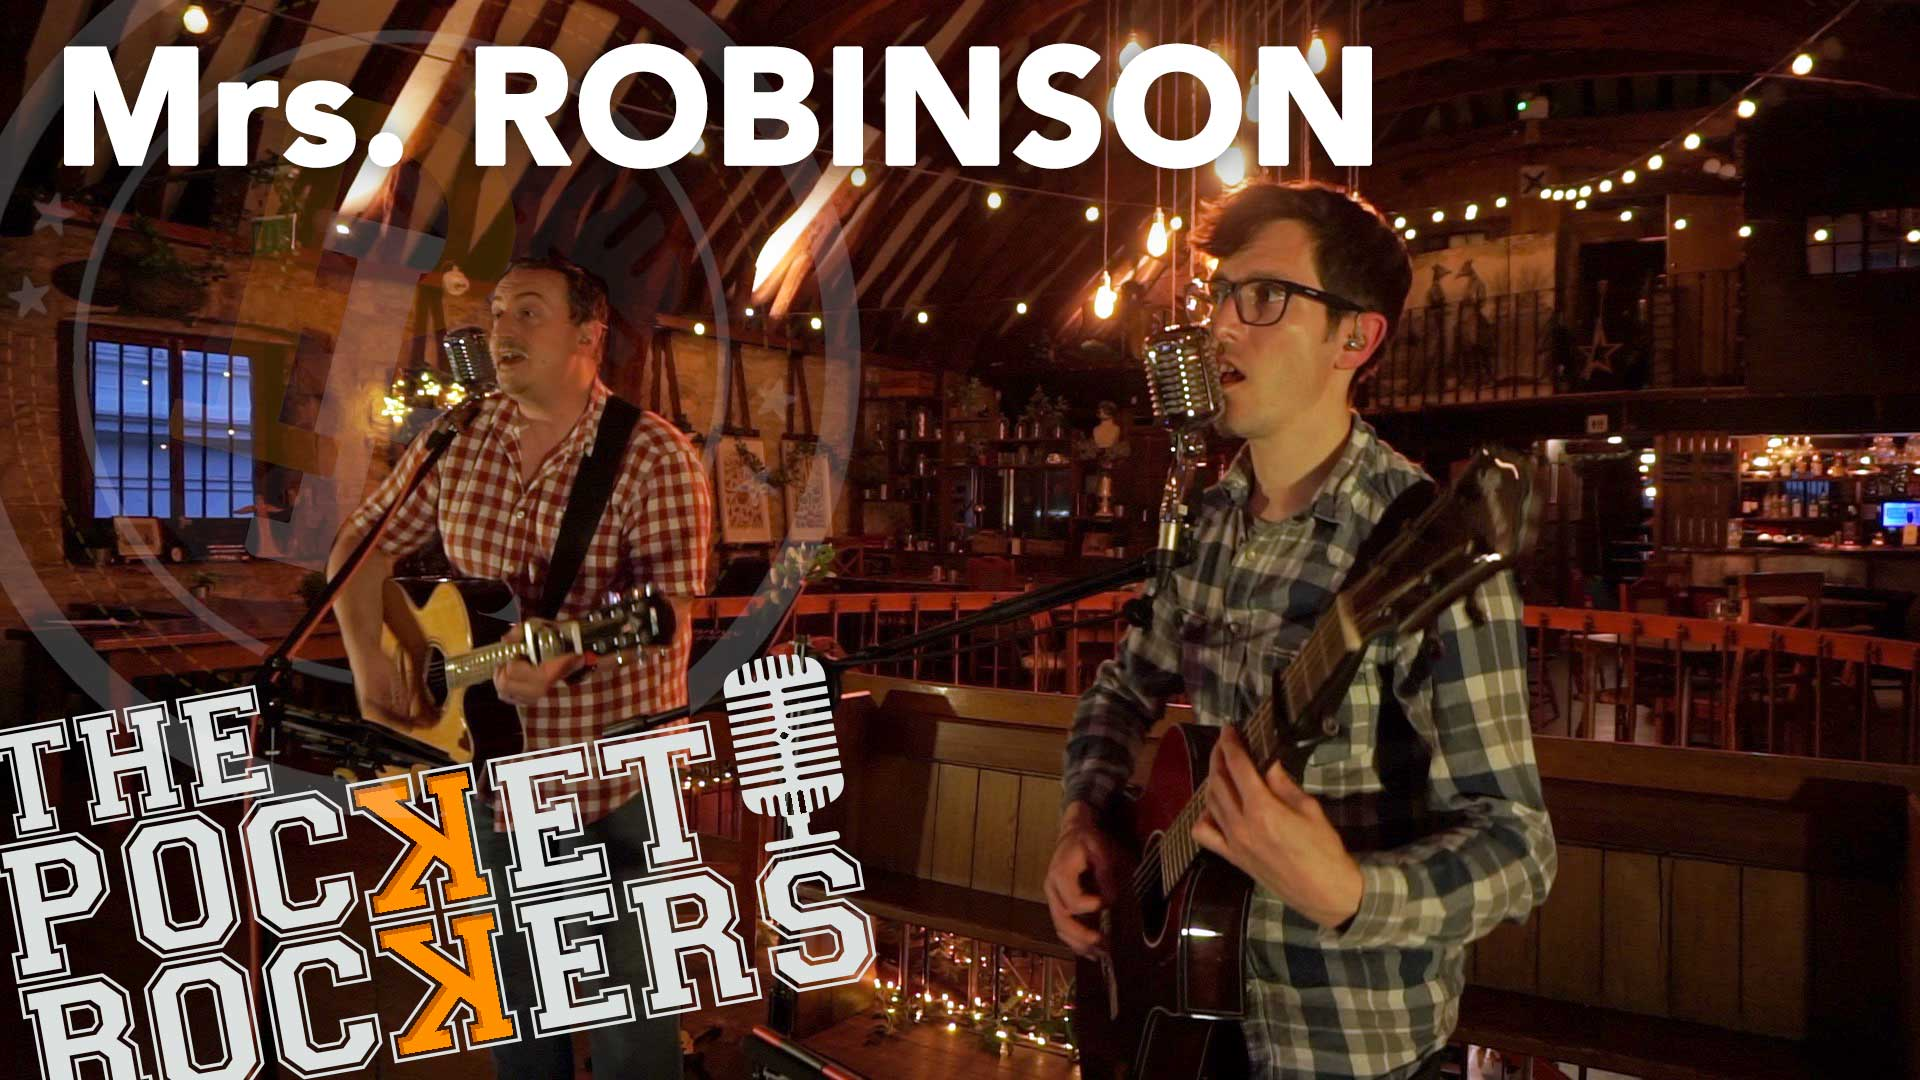 Thumbnail for the music video Mrs Robinson performed by The Pocket Rockers